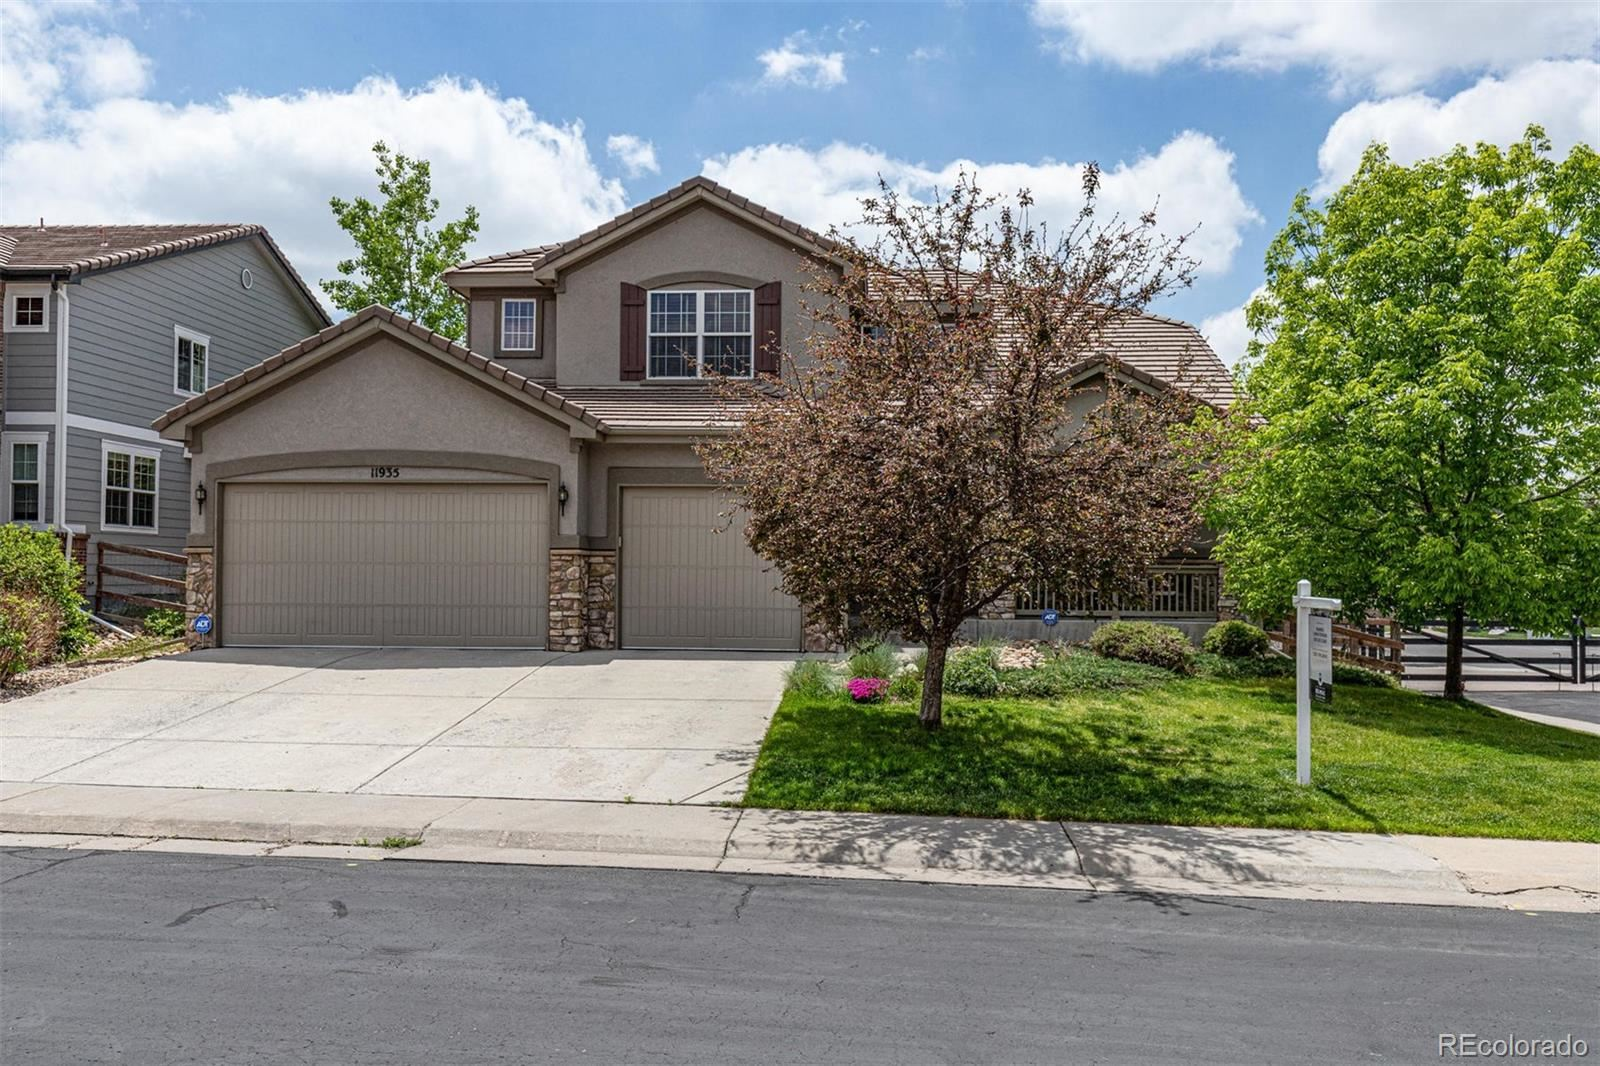 11935 E Lake Court, Greenwood Village, CO 80111 - #: 6615832